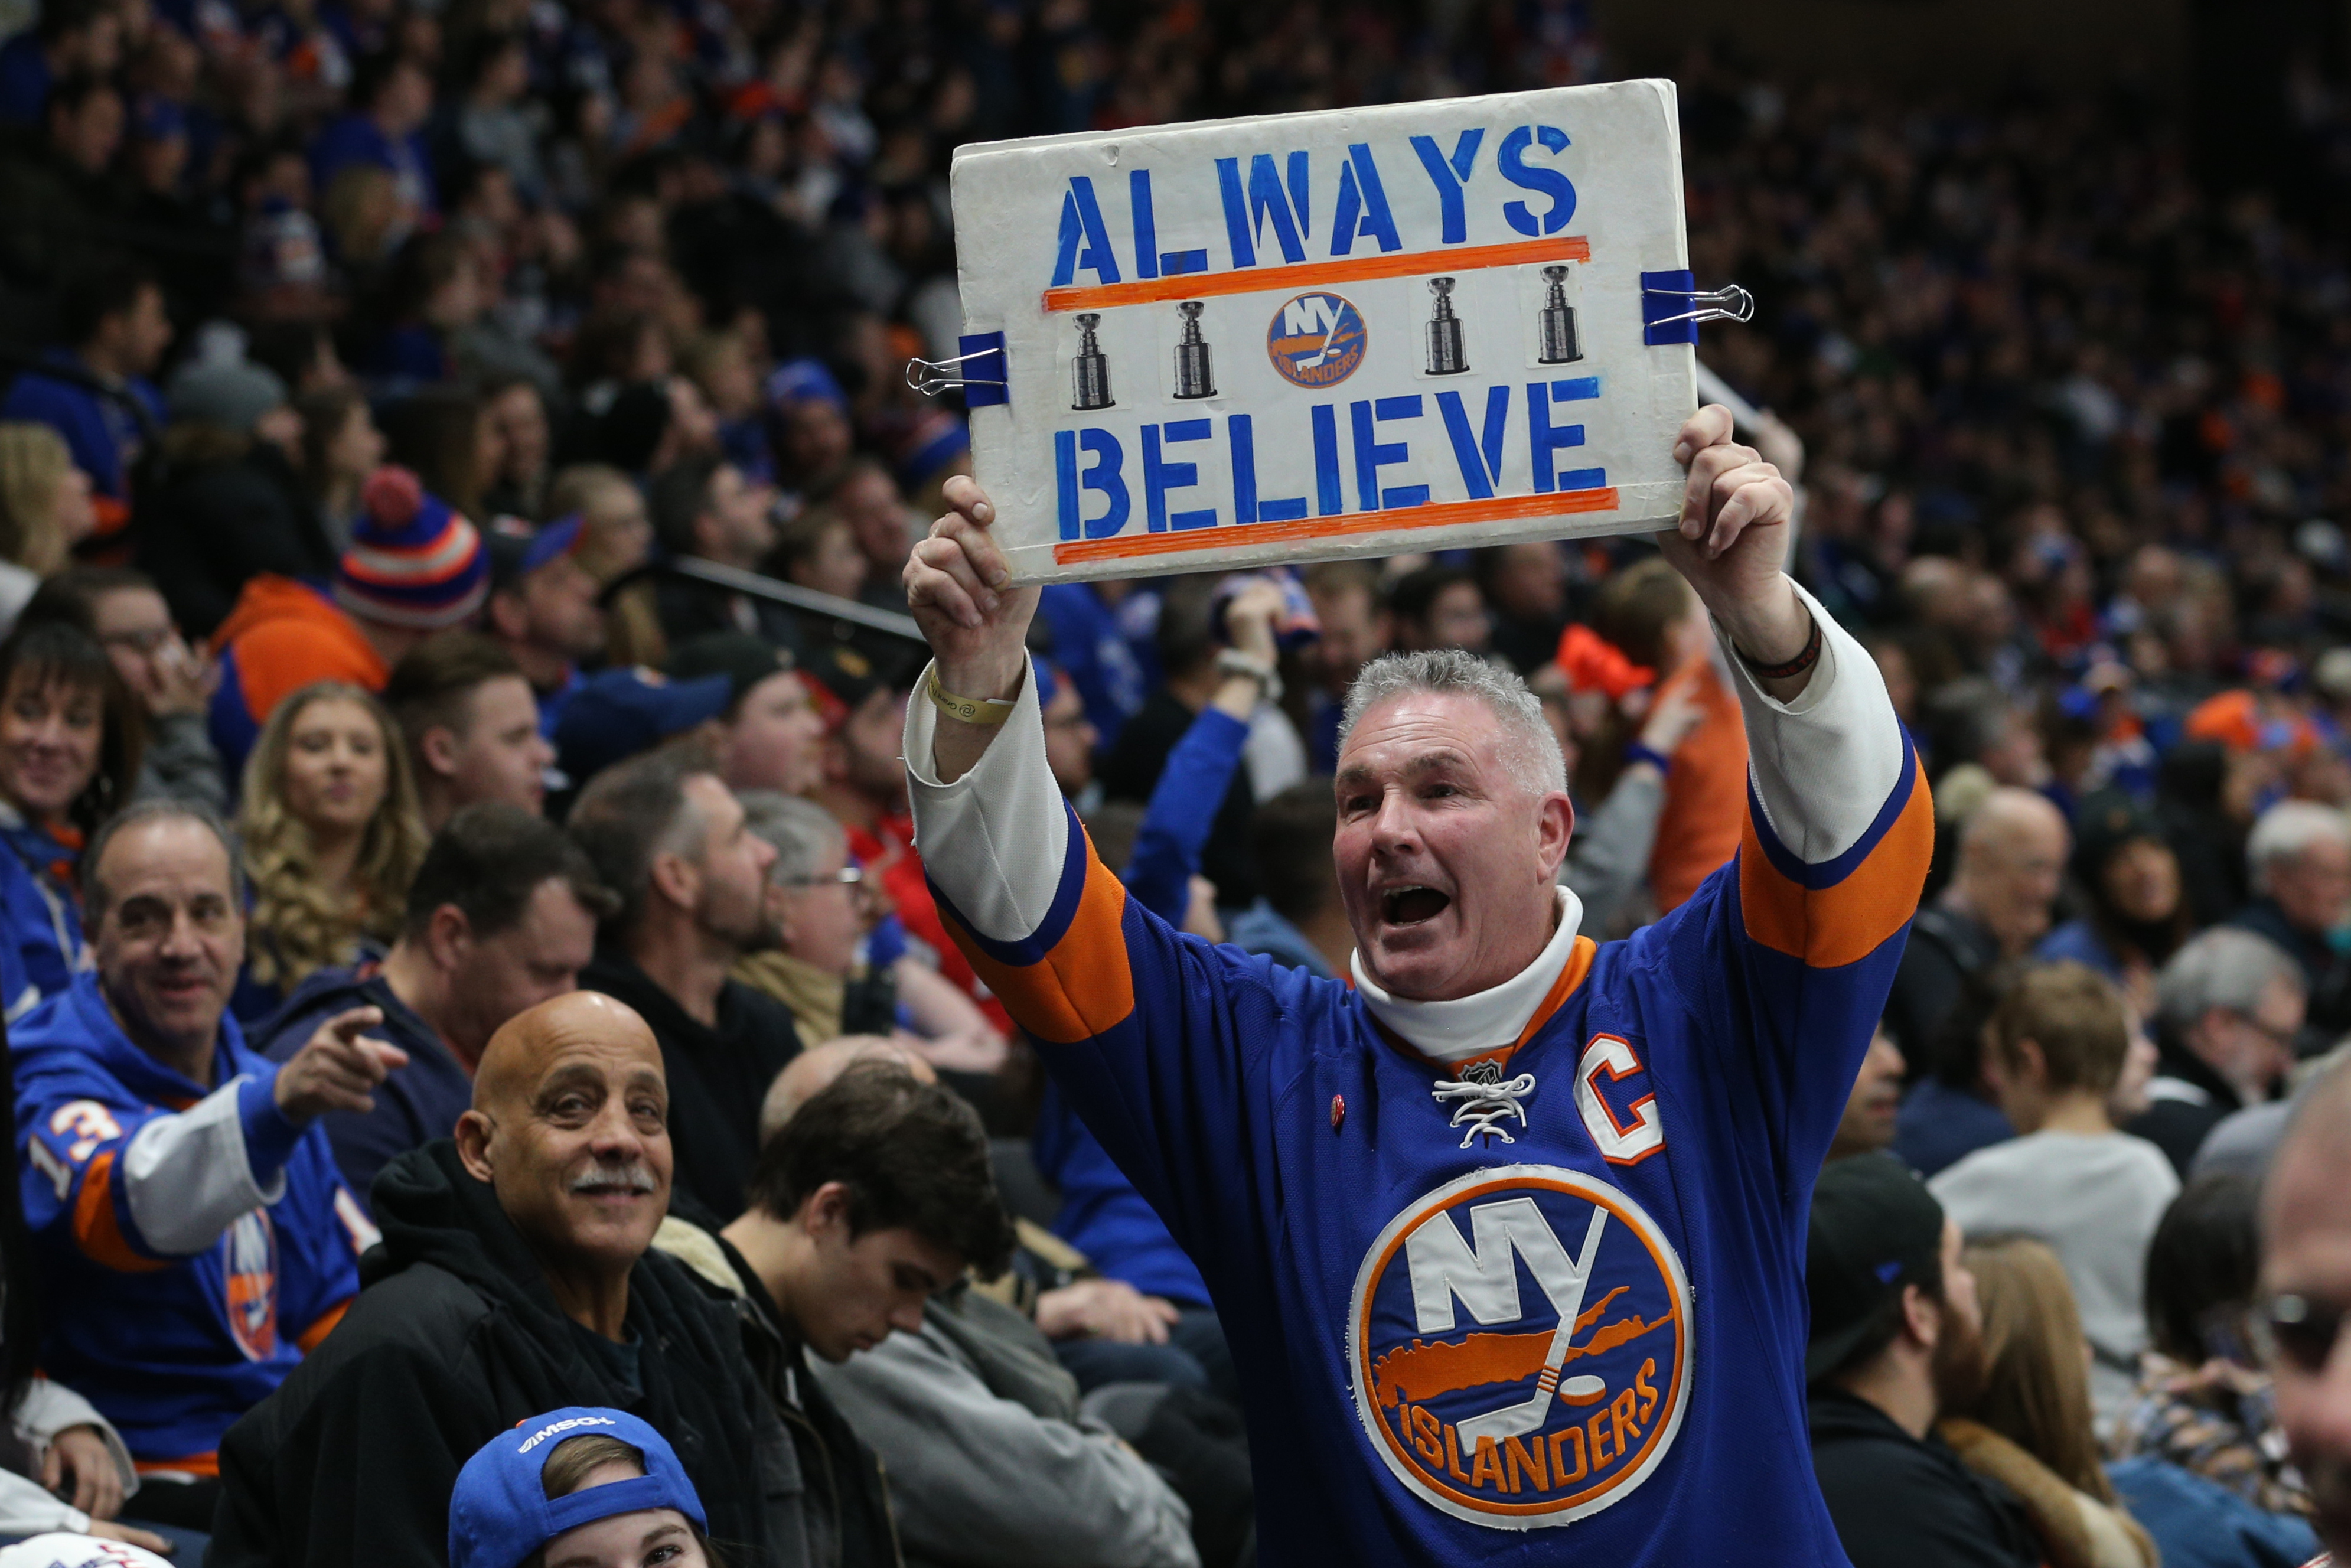 Feb 1, 2019; Uniondale, NY, USA; A fan of the New York Islanders displays a sign during the third period against the Tampa Bay Lightning at Nassau Veterans Memorial Coliseum. Mandatory Credit: Brad Penner-USA TODAY Sports